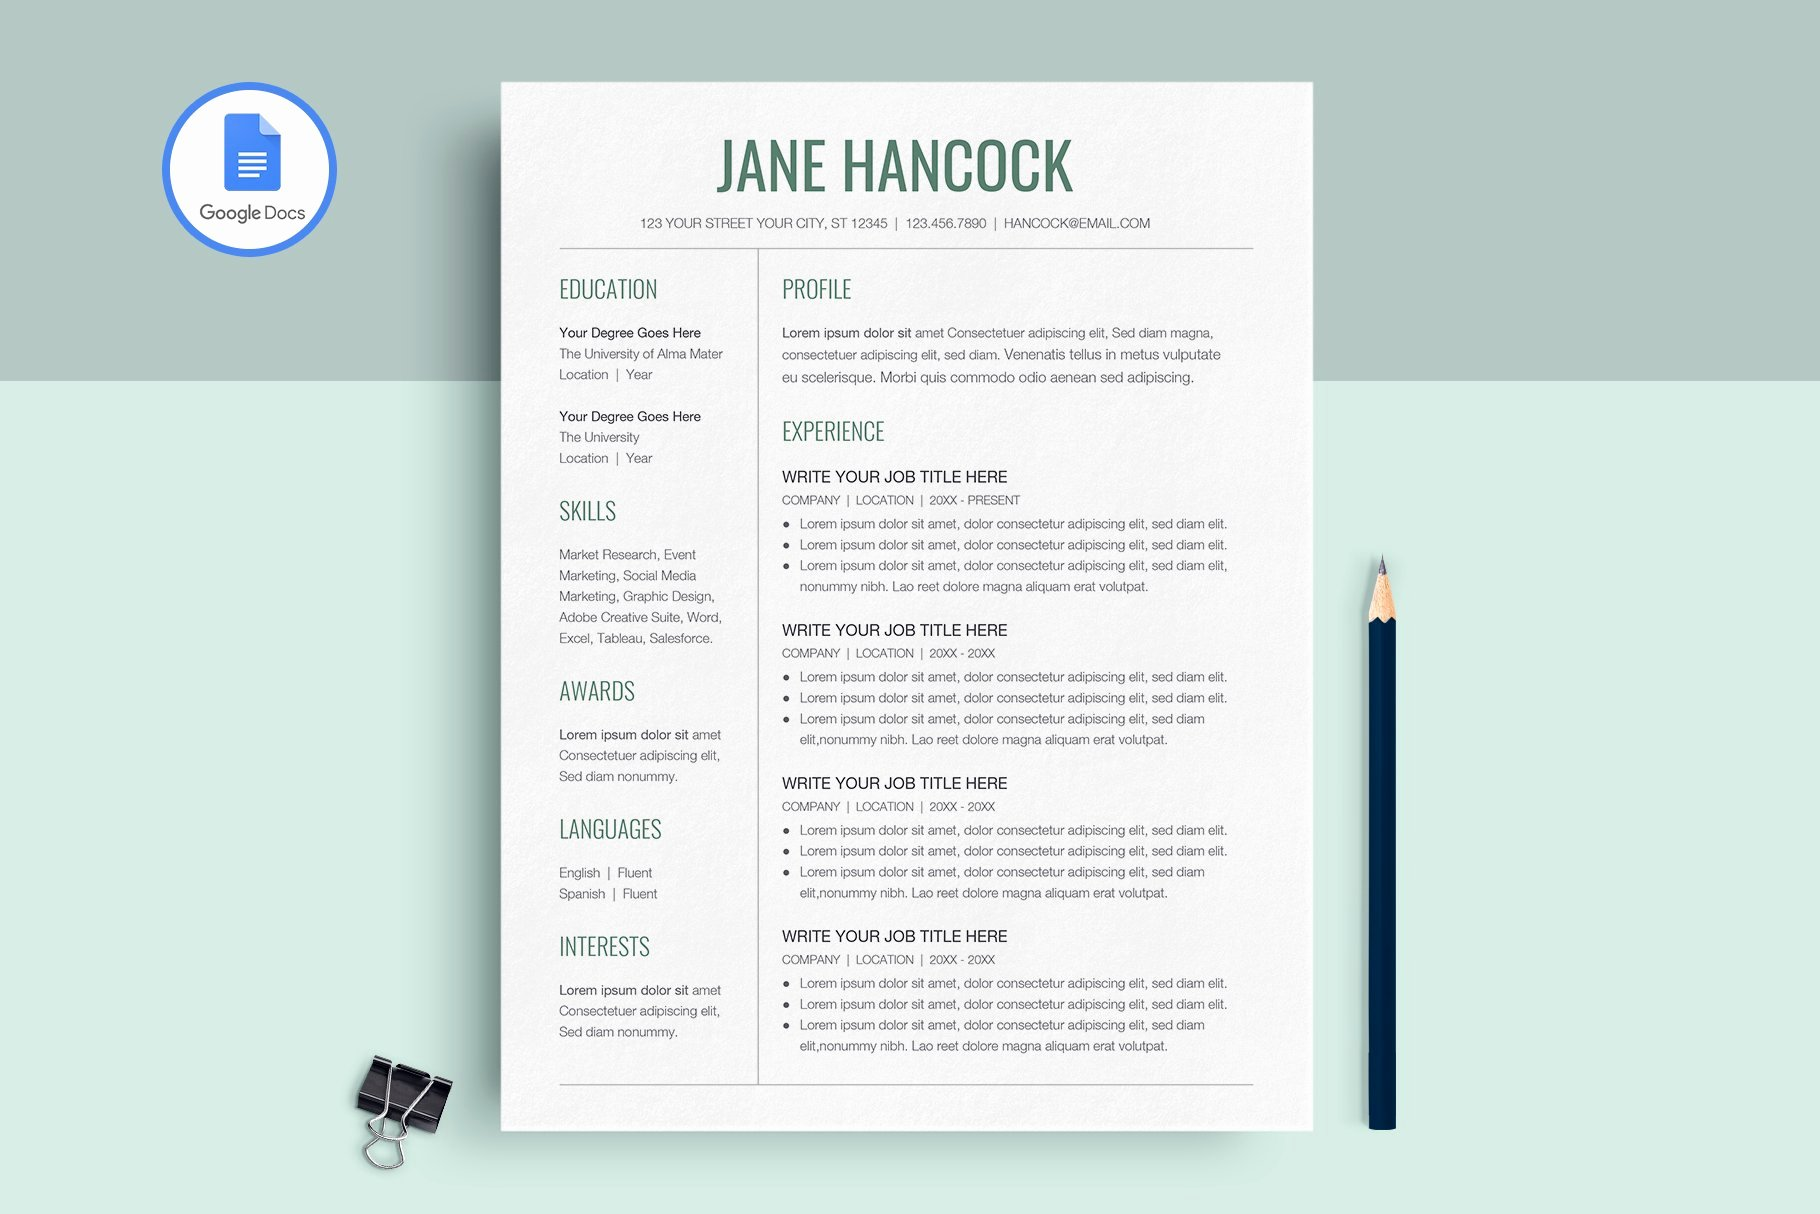 Google Docs Magazine Template Luxury Google Docs Resume Template Resume Templates Creative